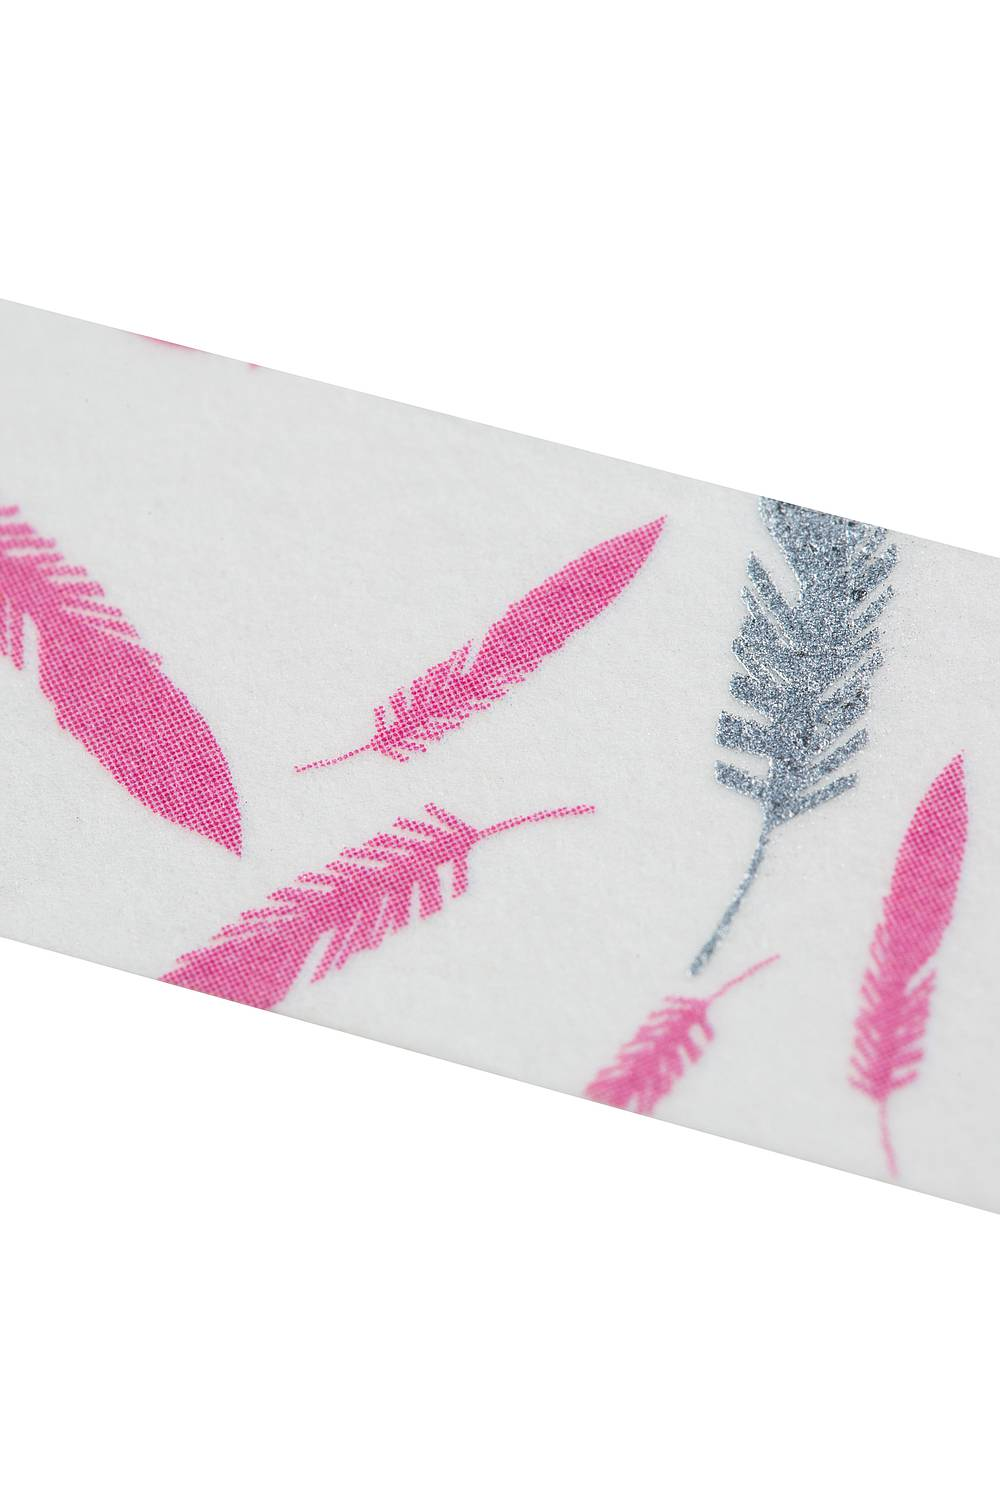 Washi Tape SILVER FEATHERS